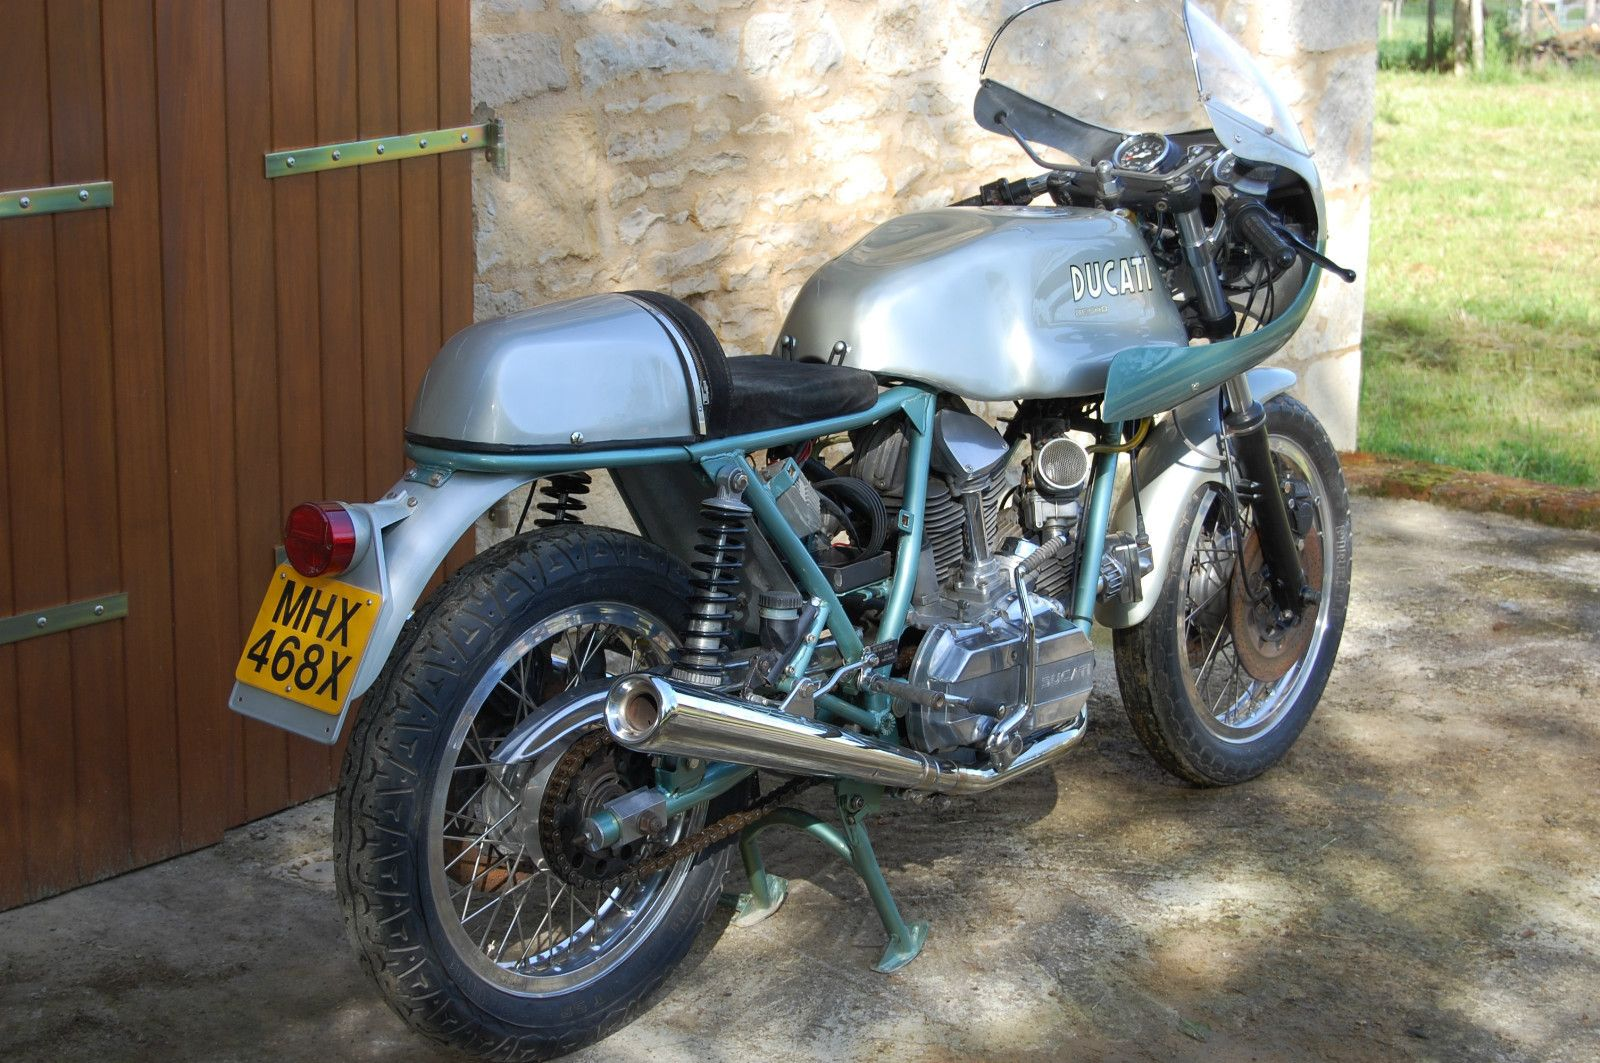 for sale ducati 900ss bevel drive cafe racer. duck egg green and